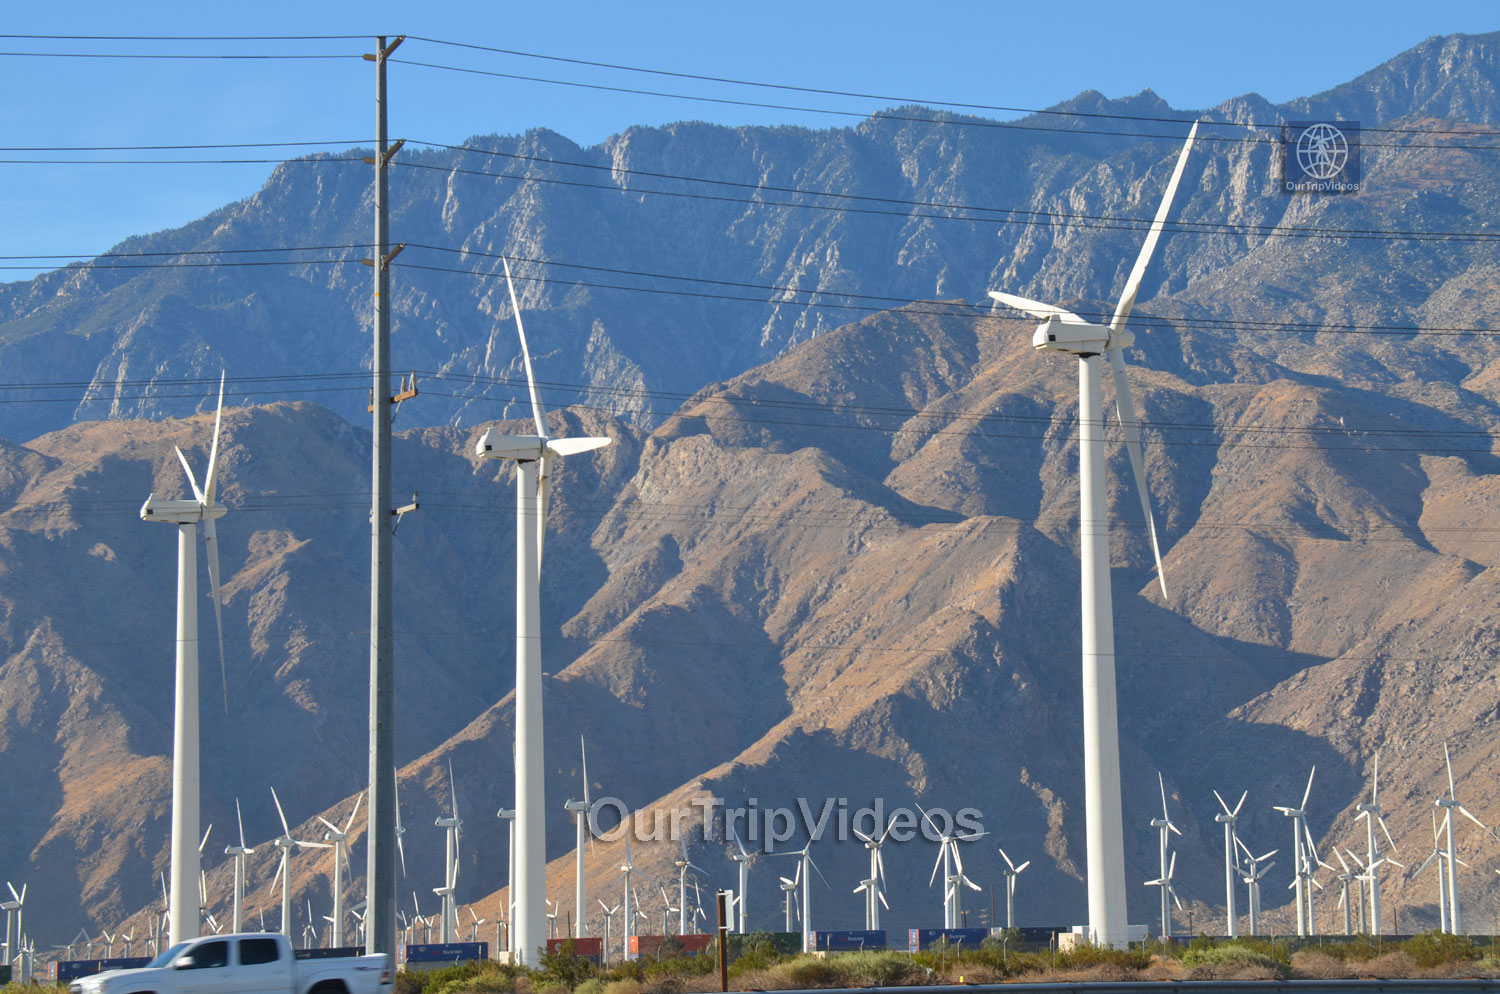 Windmill Tour, Palm Springs, CA, USA - Picture 11 of 25